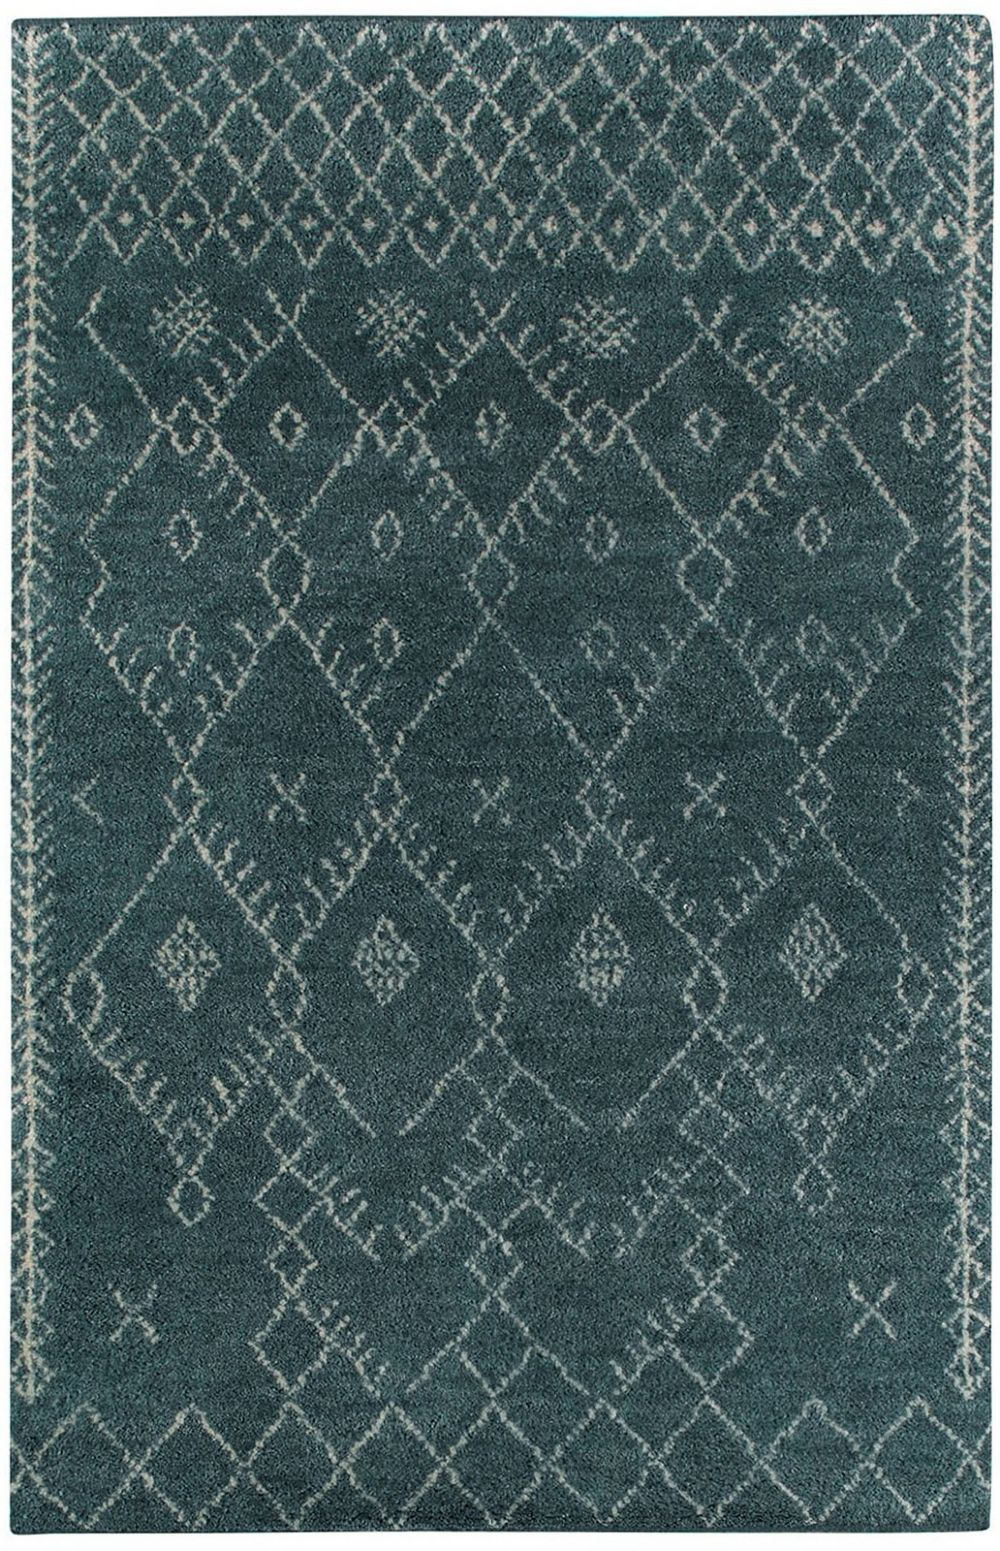 capel fortress-diamond contemporary area rug collection